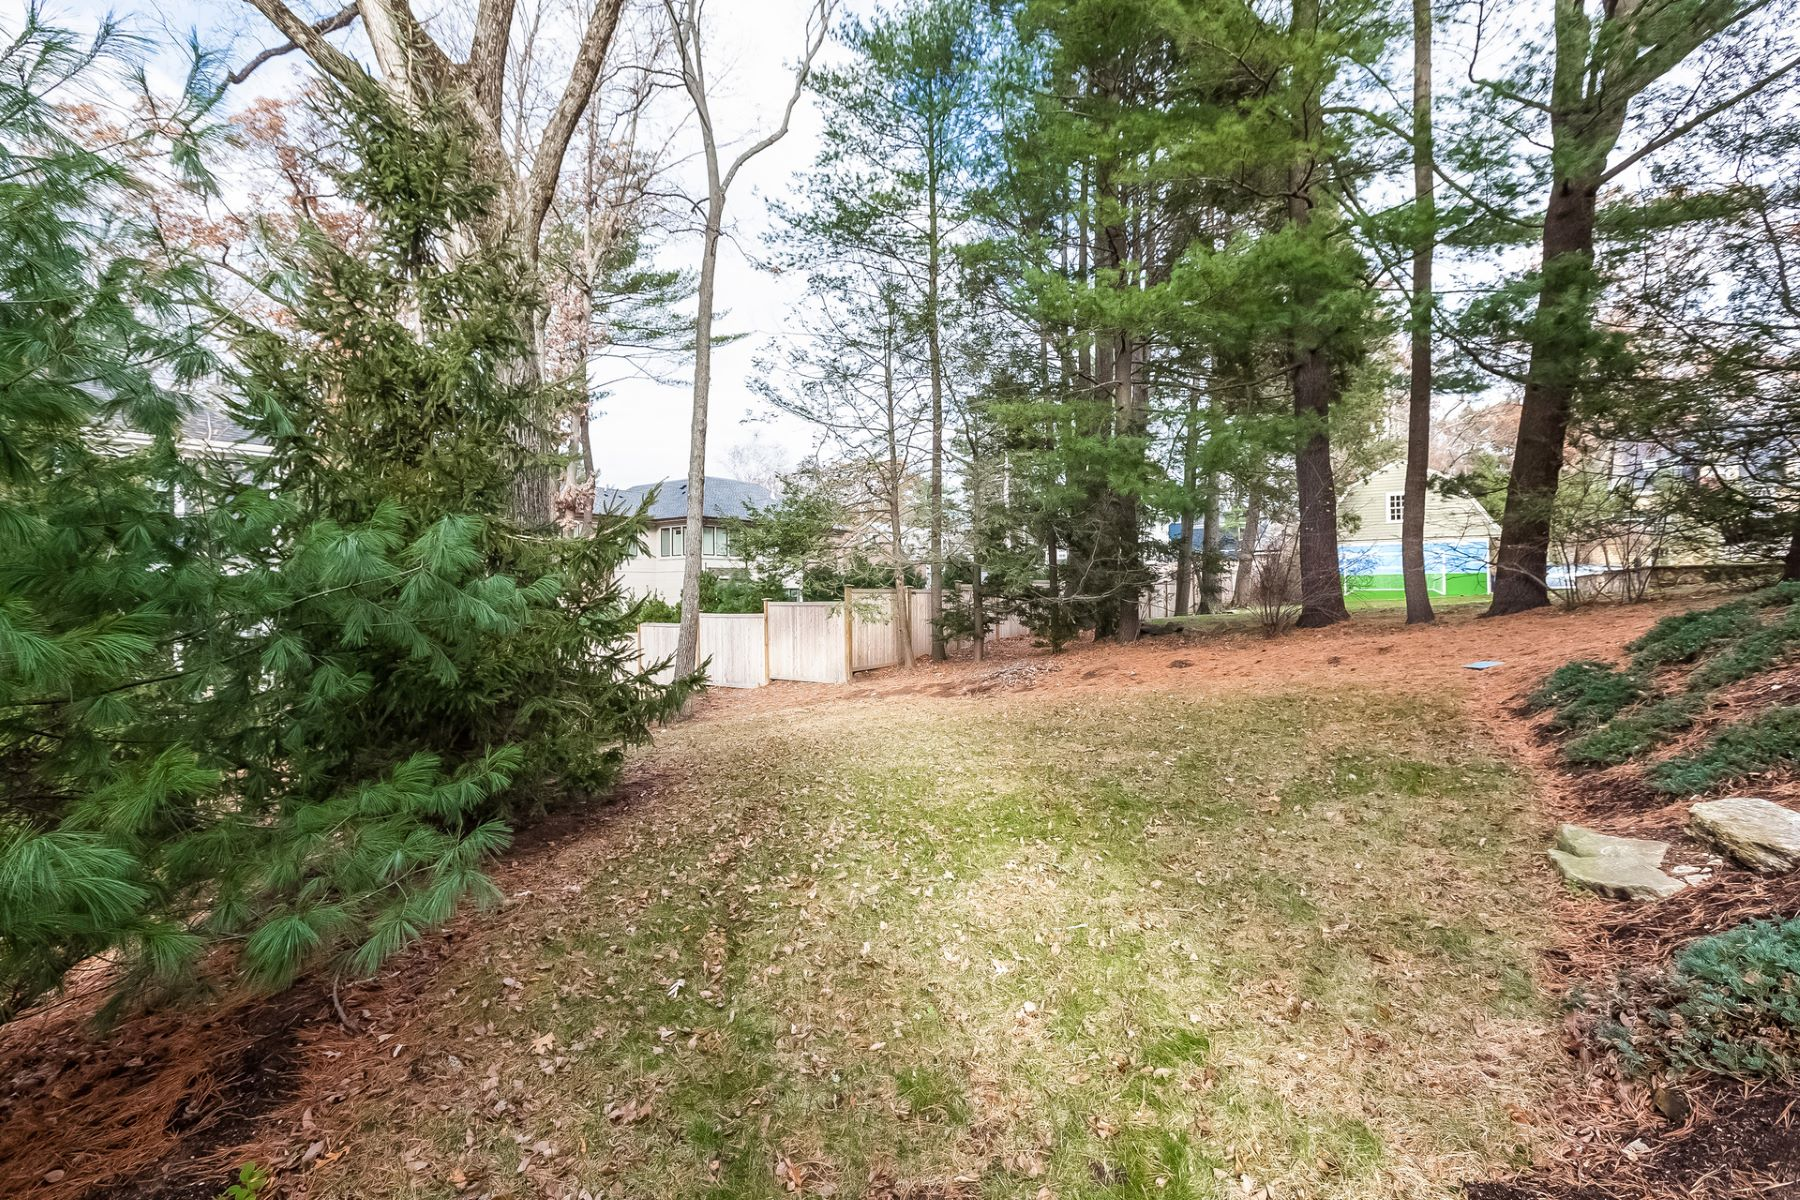 Additional photo for property listing at 181 Pine Ridge Road, Newton 181 Pine Ridge Rd Newton, Massachusetts 02468 United States